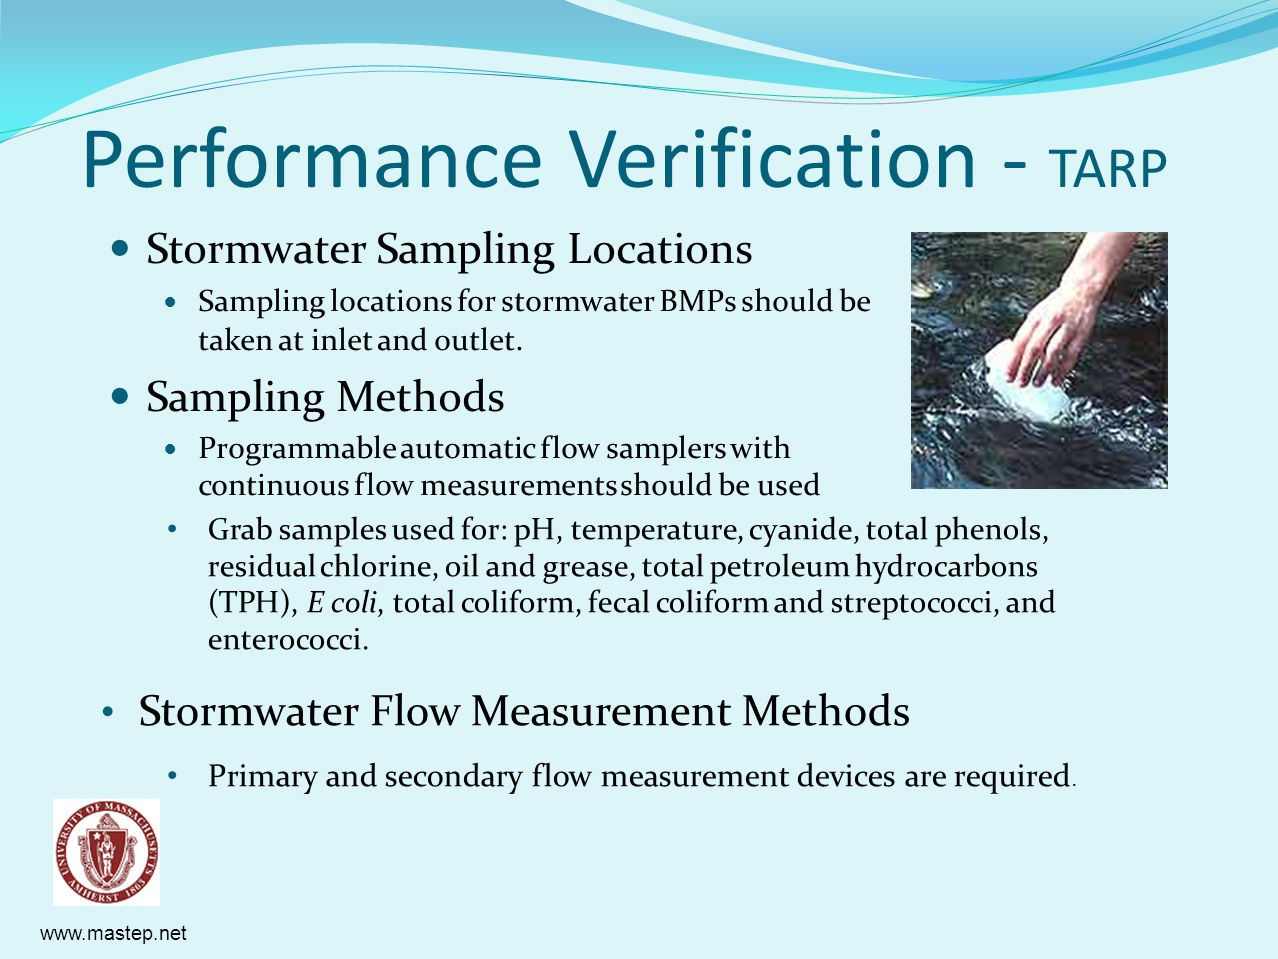 www.mastep.net Performance Verification - TARP Stormwater Sampling Locations Sampling locations for stormwater BMPs should be taken at inlet and outle